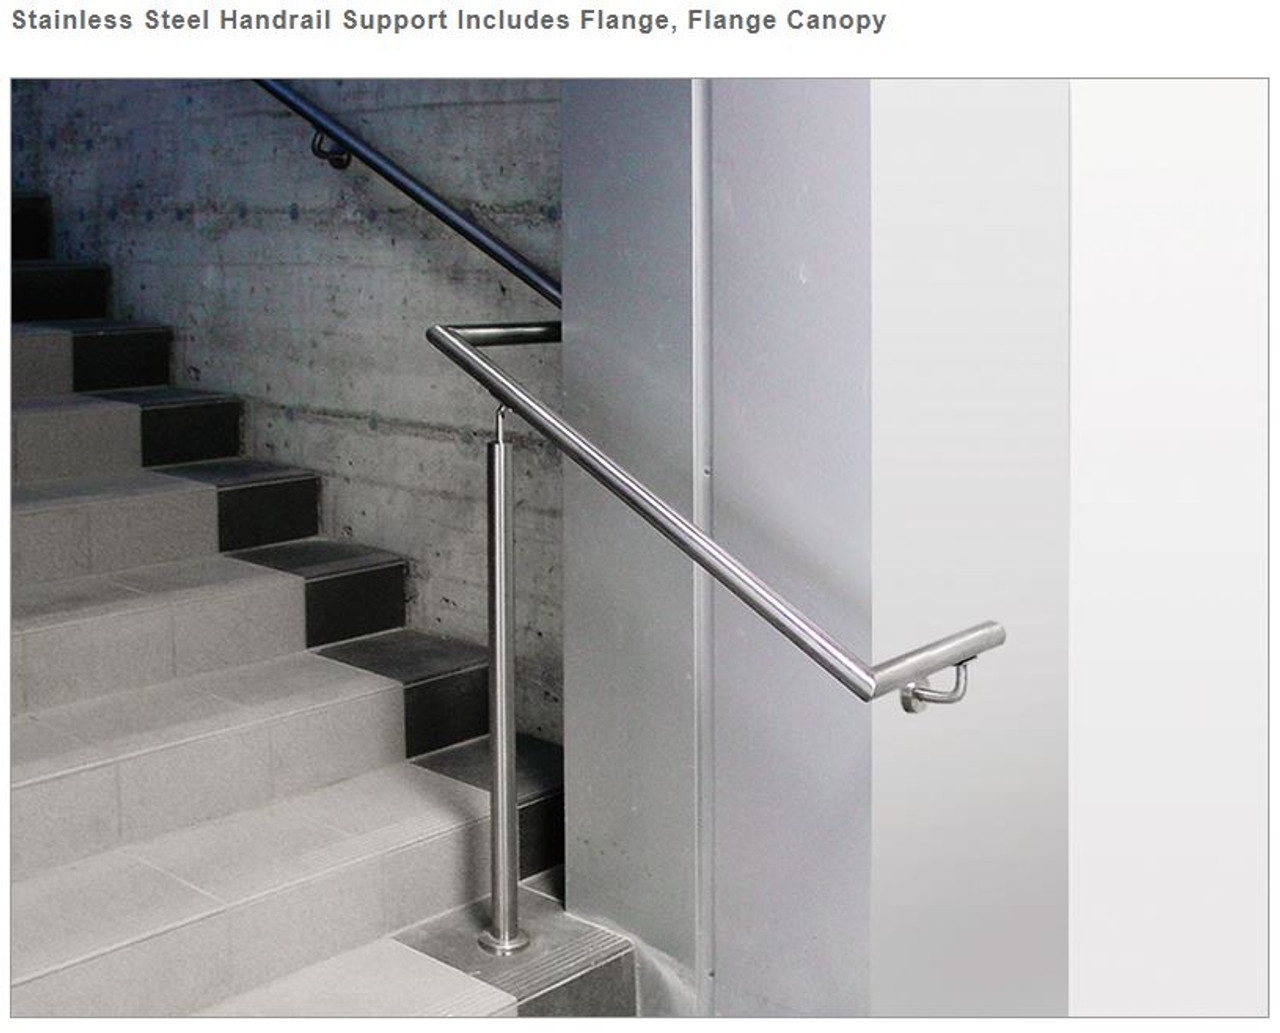 E022 S Stainless Steel Handrail Support Includes Fl*Ng* Fl*Ng* Canopy | Stainless Steel Hand Railing | Balustrade | Modern | Fabrication | Welded Steel | Stair Outdoors